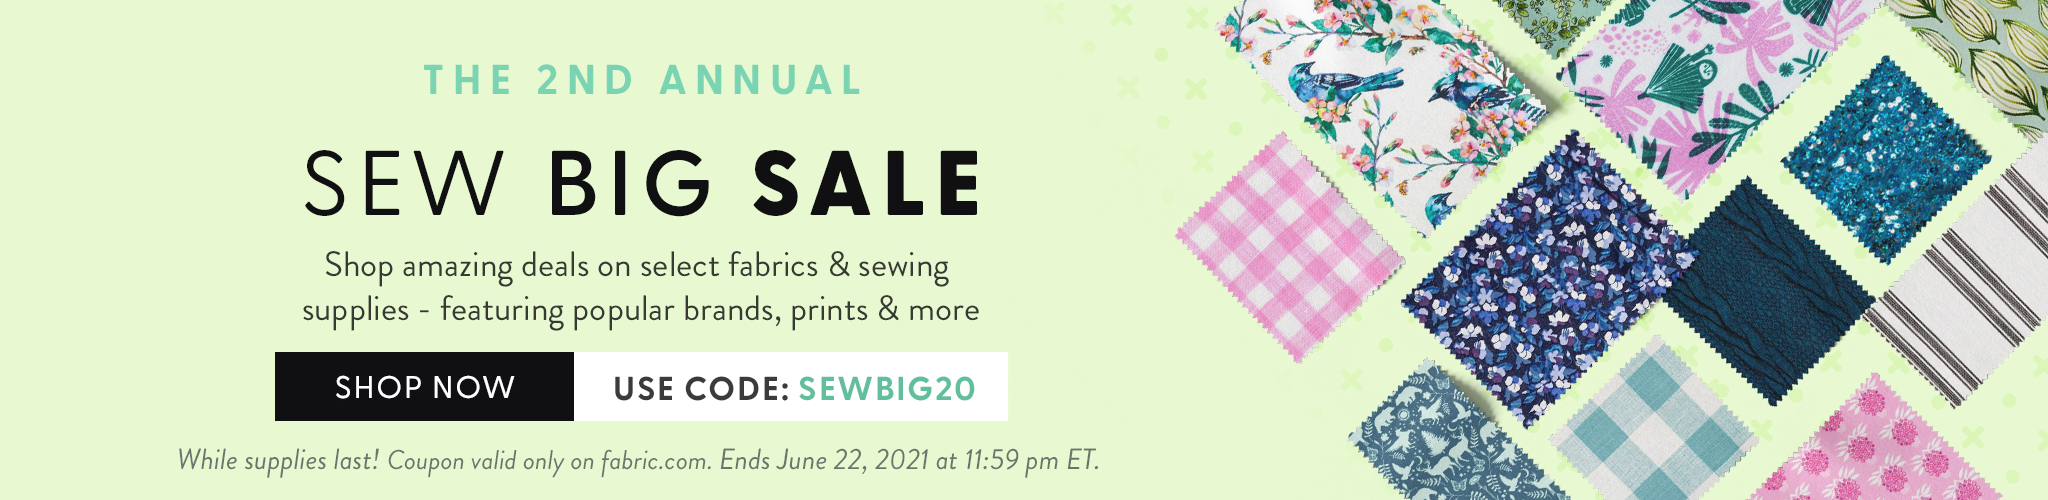 The 2nd Annual Sew Big Sale. Shop amazing deals on select fabrics and sewing supplies - featuring popular brands, prints, and more